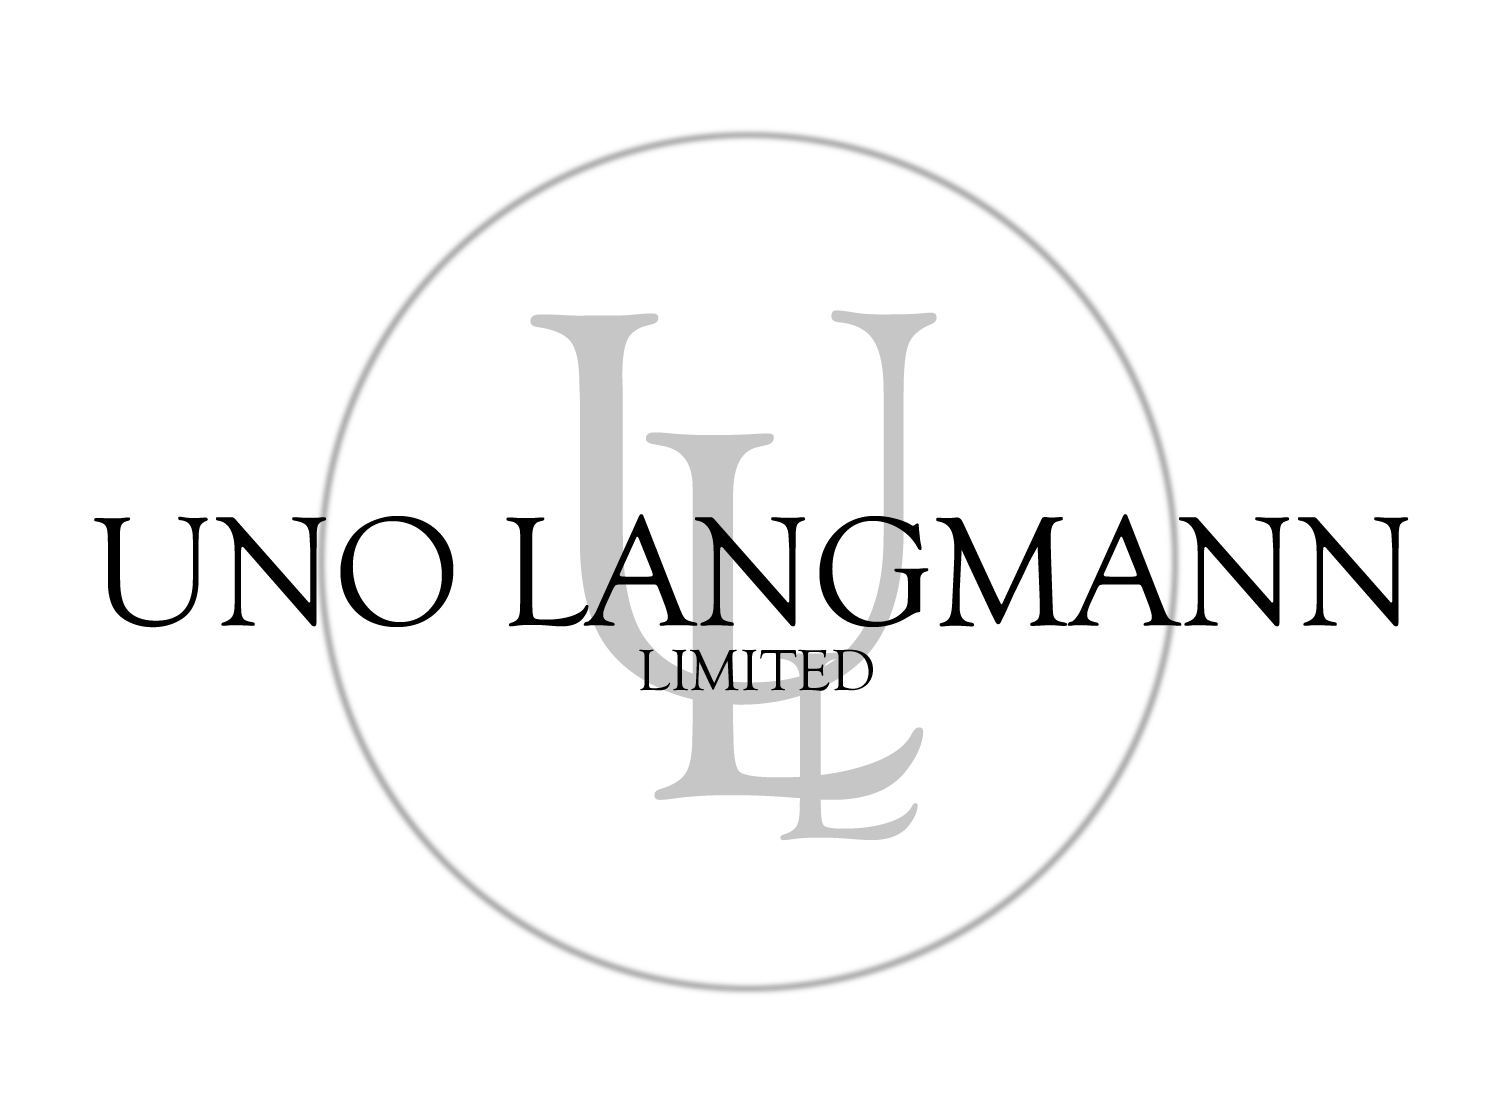 Uno Langmann Limited | Fine Art and Antique Dealers - Vancouver